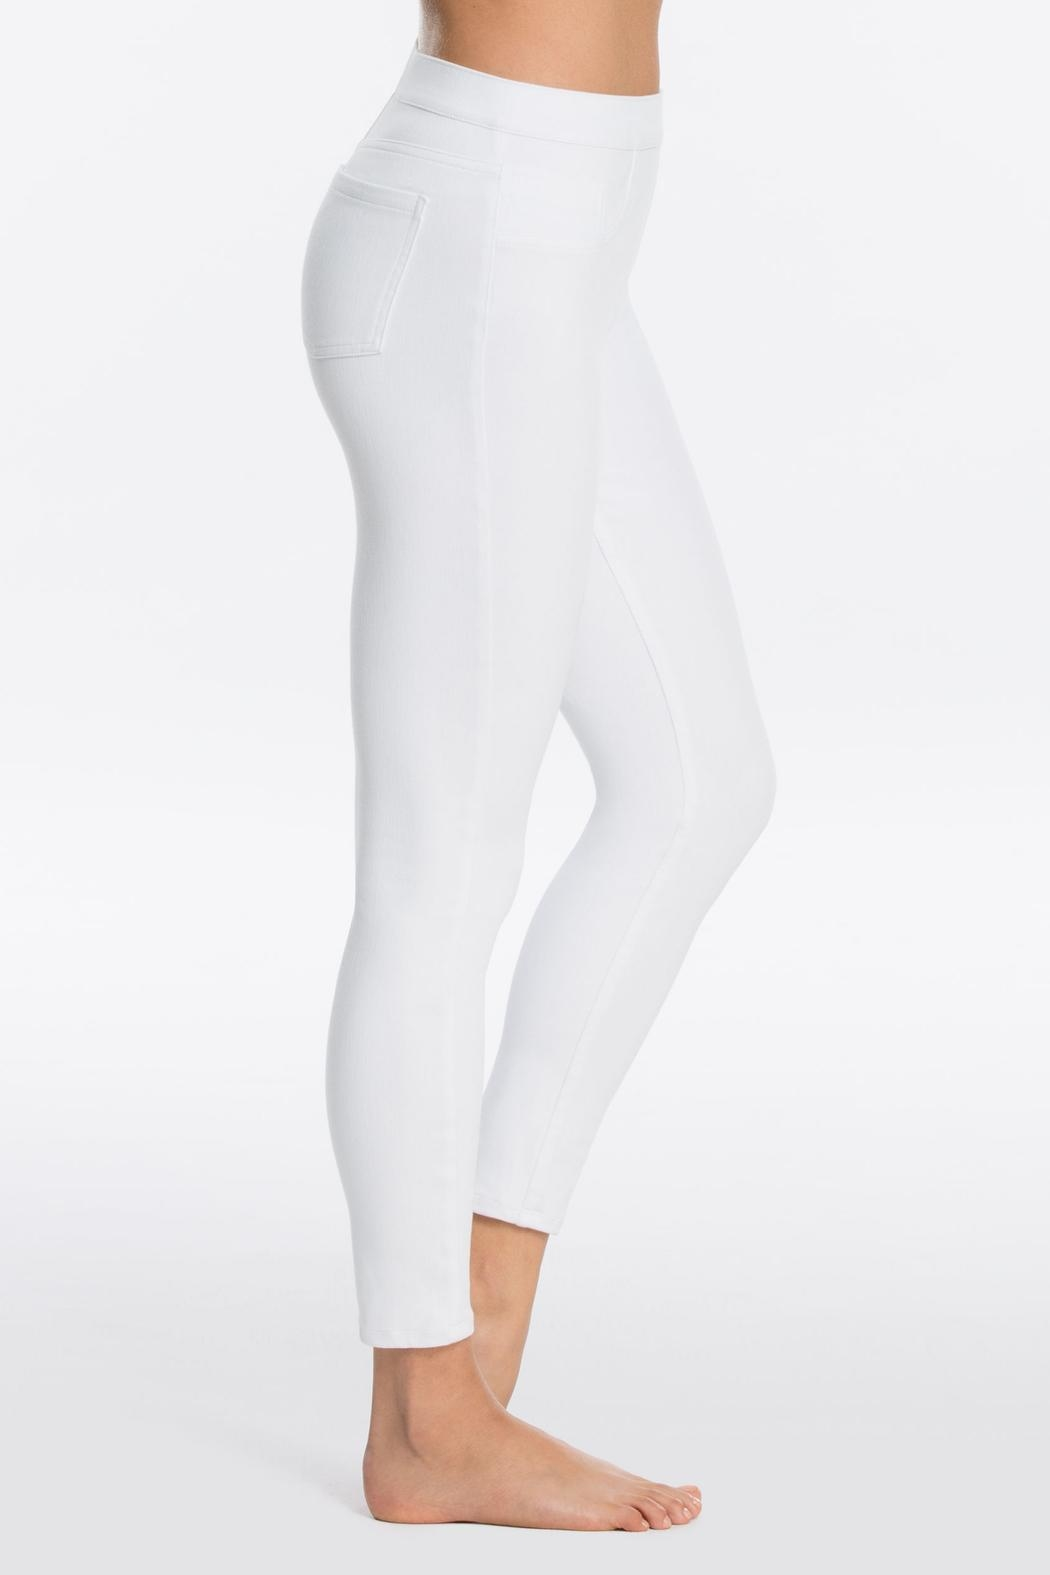 86a51d28ef1 Spanx Jean-Ish Ankle Leggings from Florida by Dressing Room Boutique ...